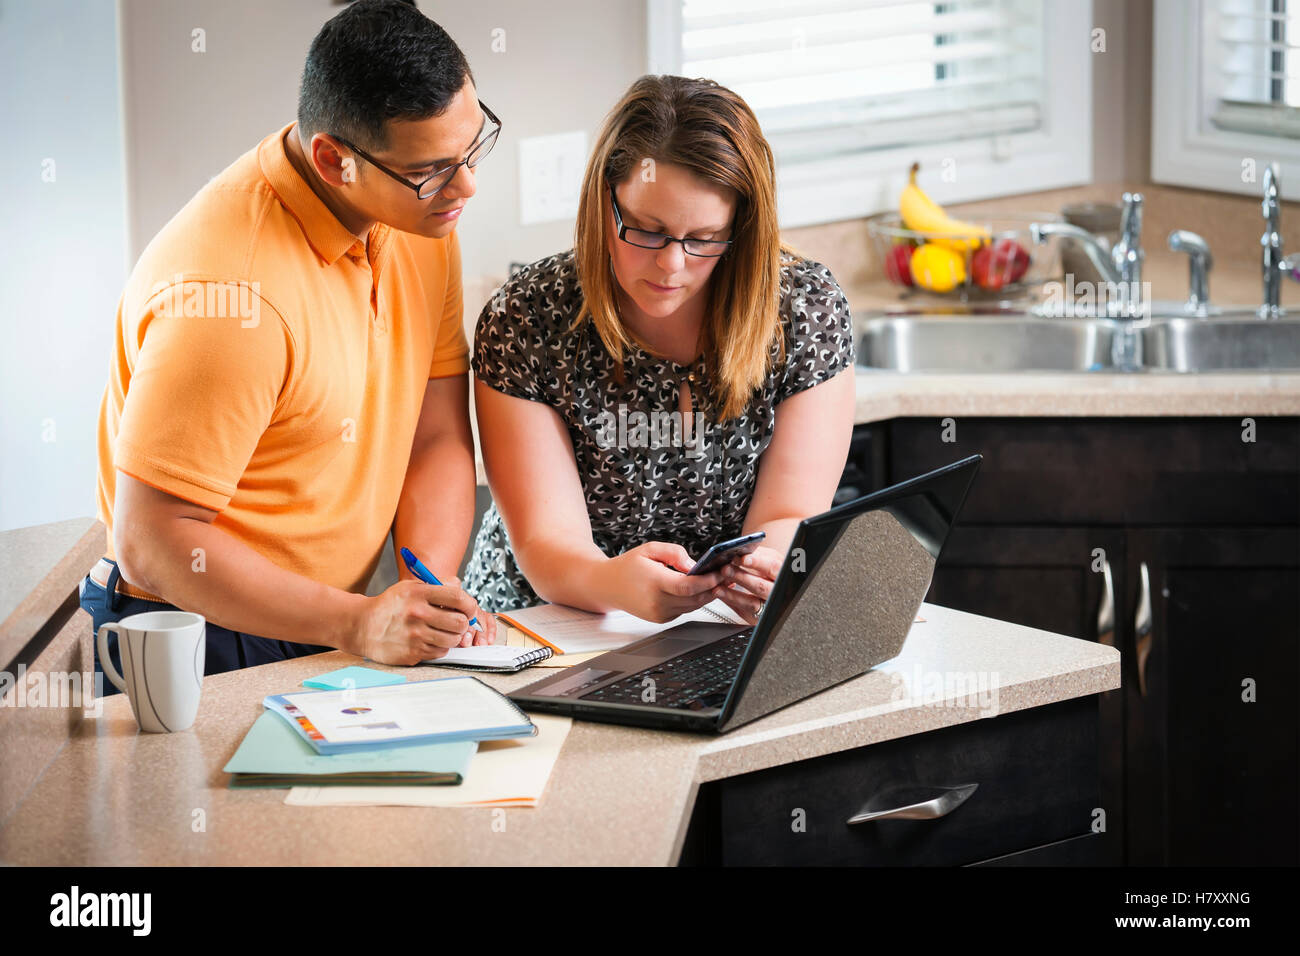 A man and woman standing in the kitchen working together with a calculator and computer; Regina, Saskatchewan, Canada - Stock Image